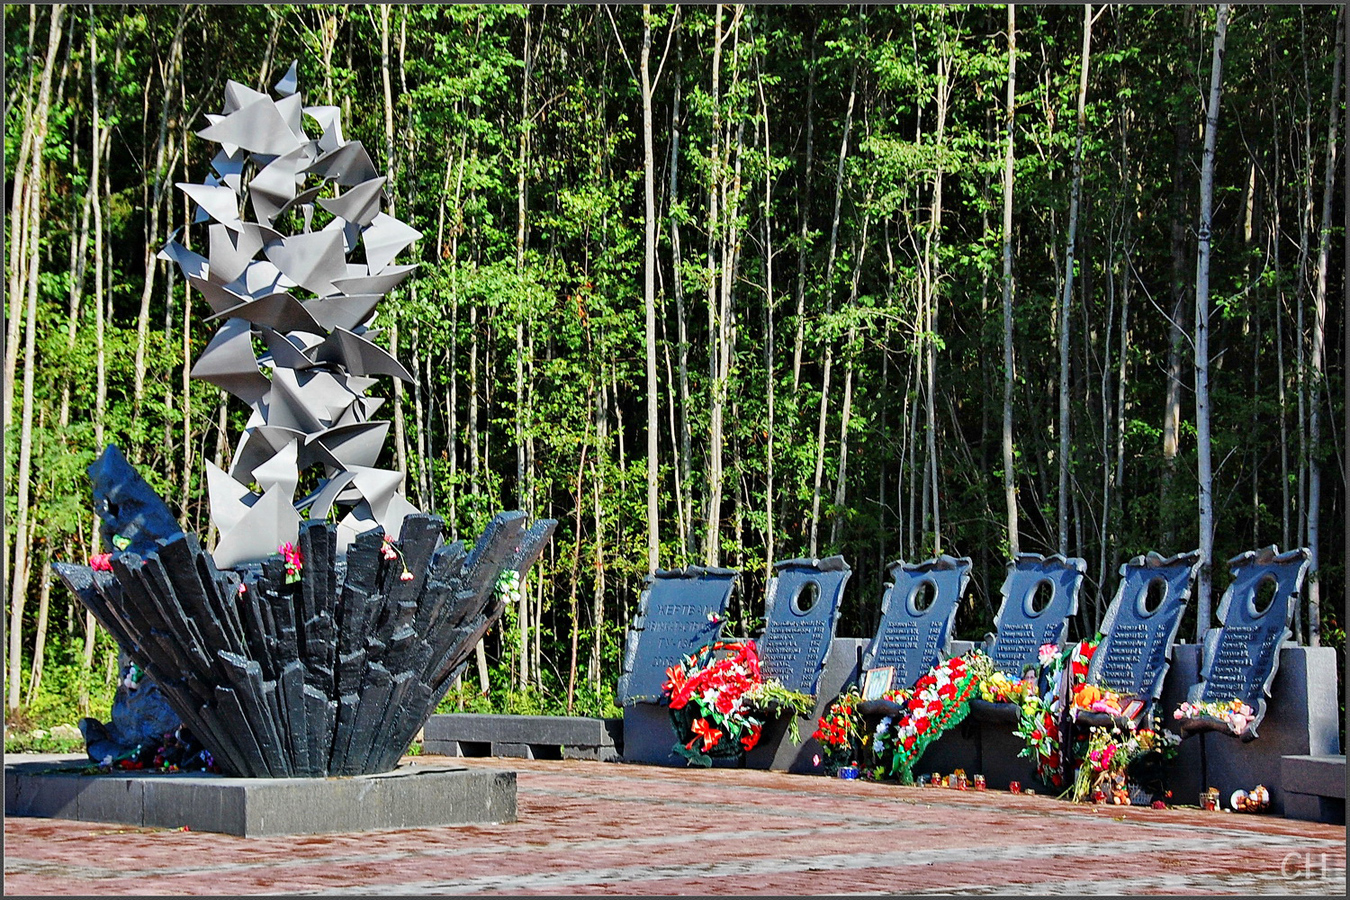 July 14, 2012. A monument at the crash site